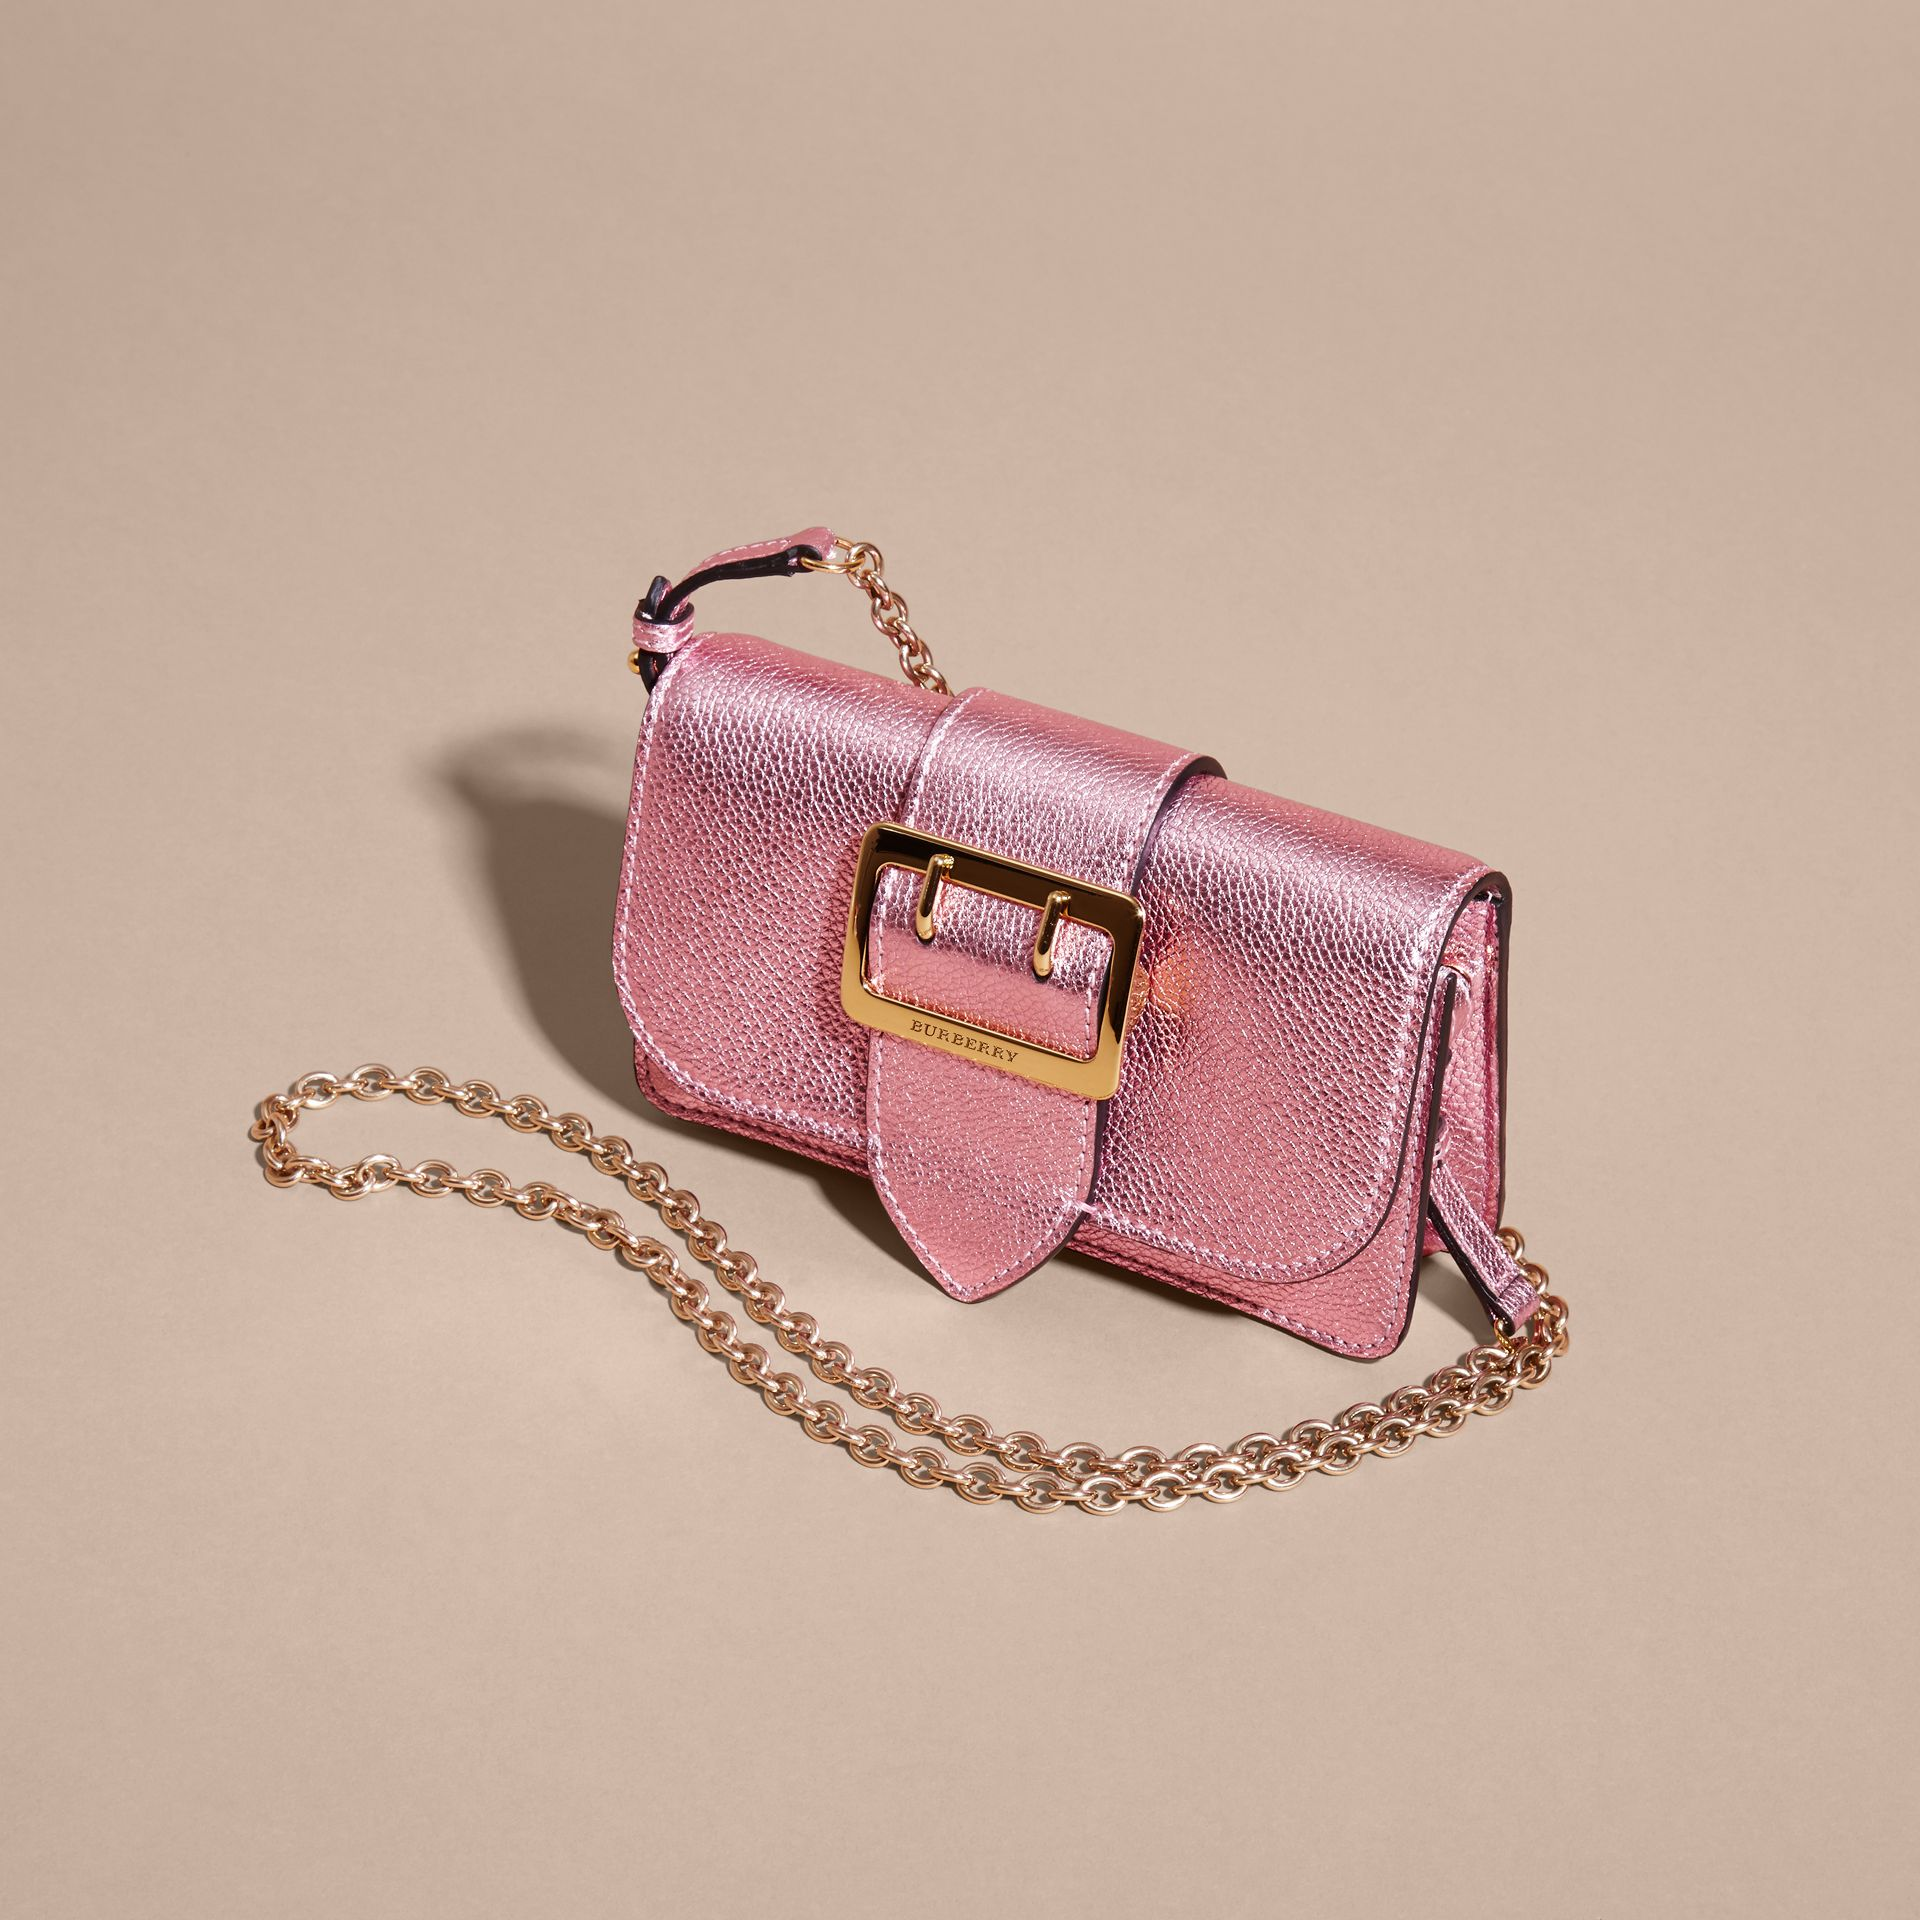 The Mini Buckle Bag in Metallic Grainy Leather in Pale Orchid - gallery image 8